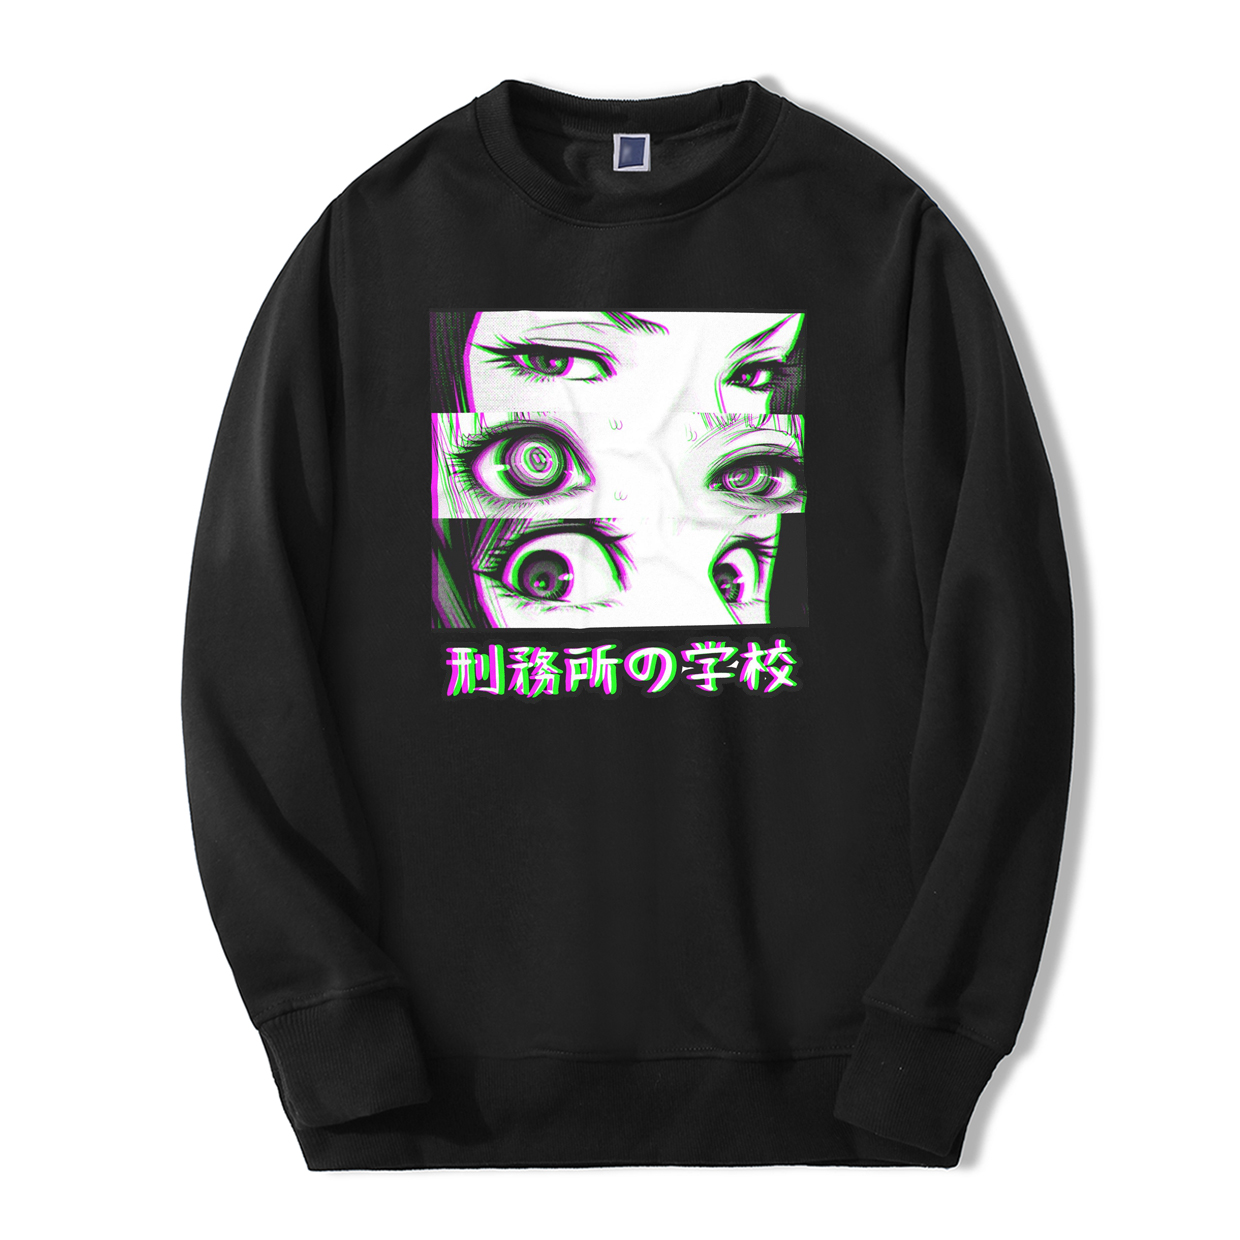 Japan Anime Prison School Eyes Sad Men Sweatshirt Hoodies 2019 Spring Winter Hot Sale Casual Loose Fit Hip Hop Fashoin Pullover(China)